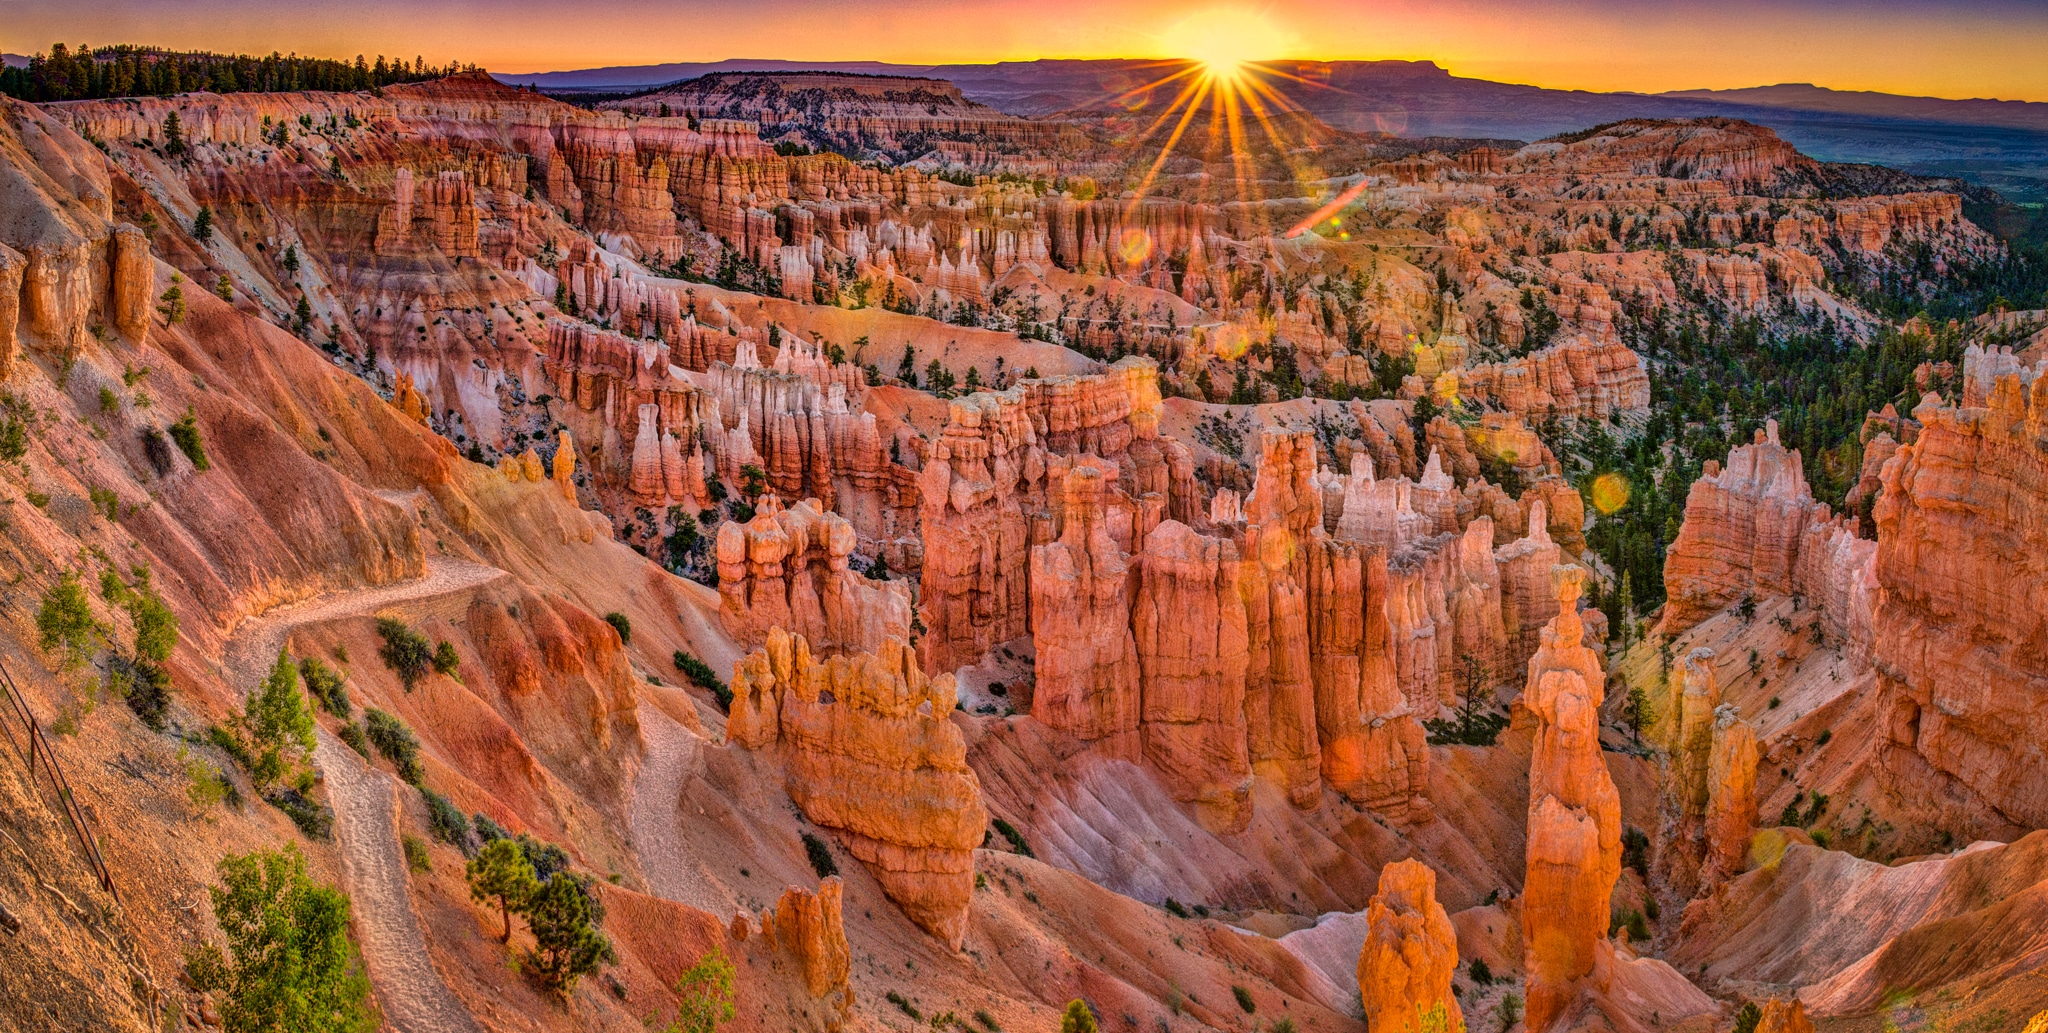 Sunrise view from Sunset Point in Bryce Canyon National Park, Utah.